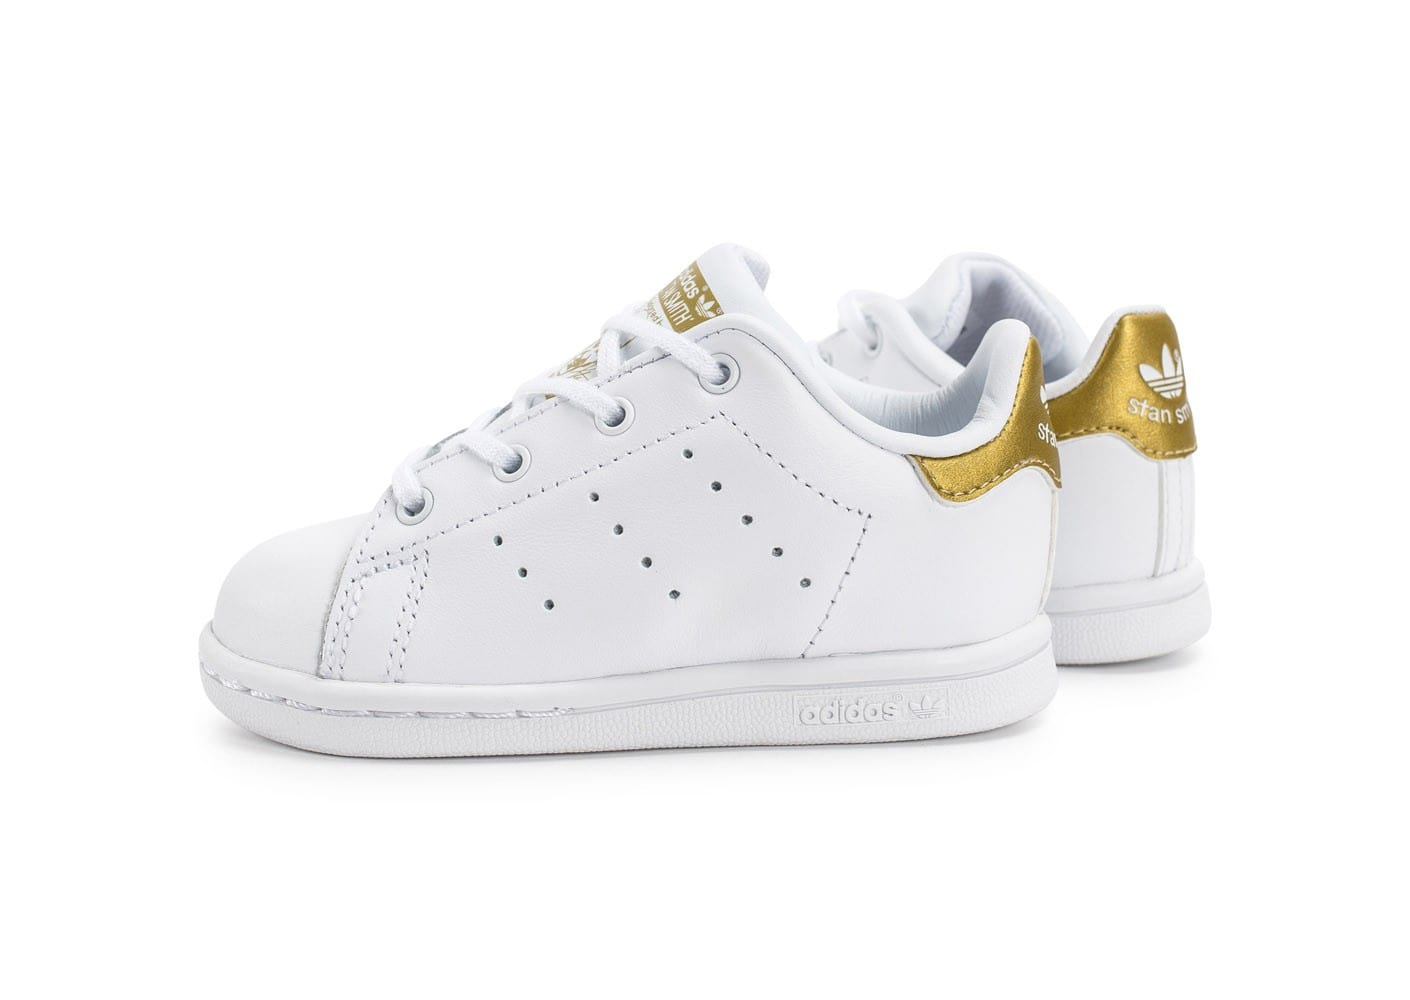 adidas stan smith b b blanche et or chaussures adidas chausport. Black Bedroom Furniture Sets. Home Design Ideas